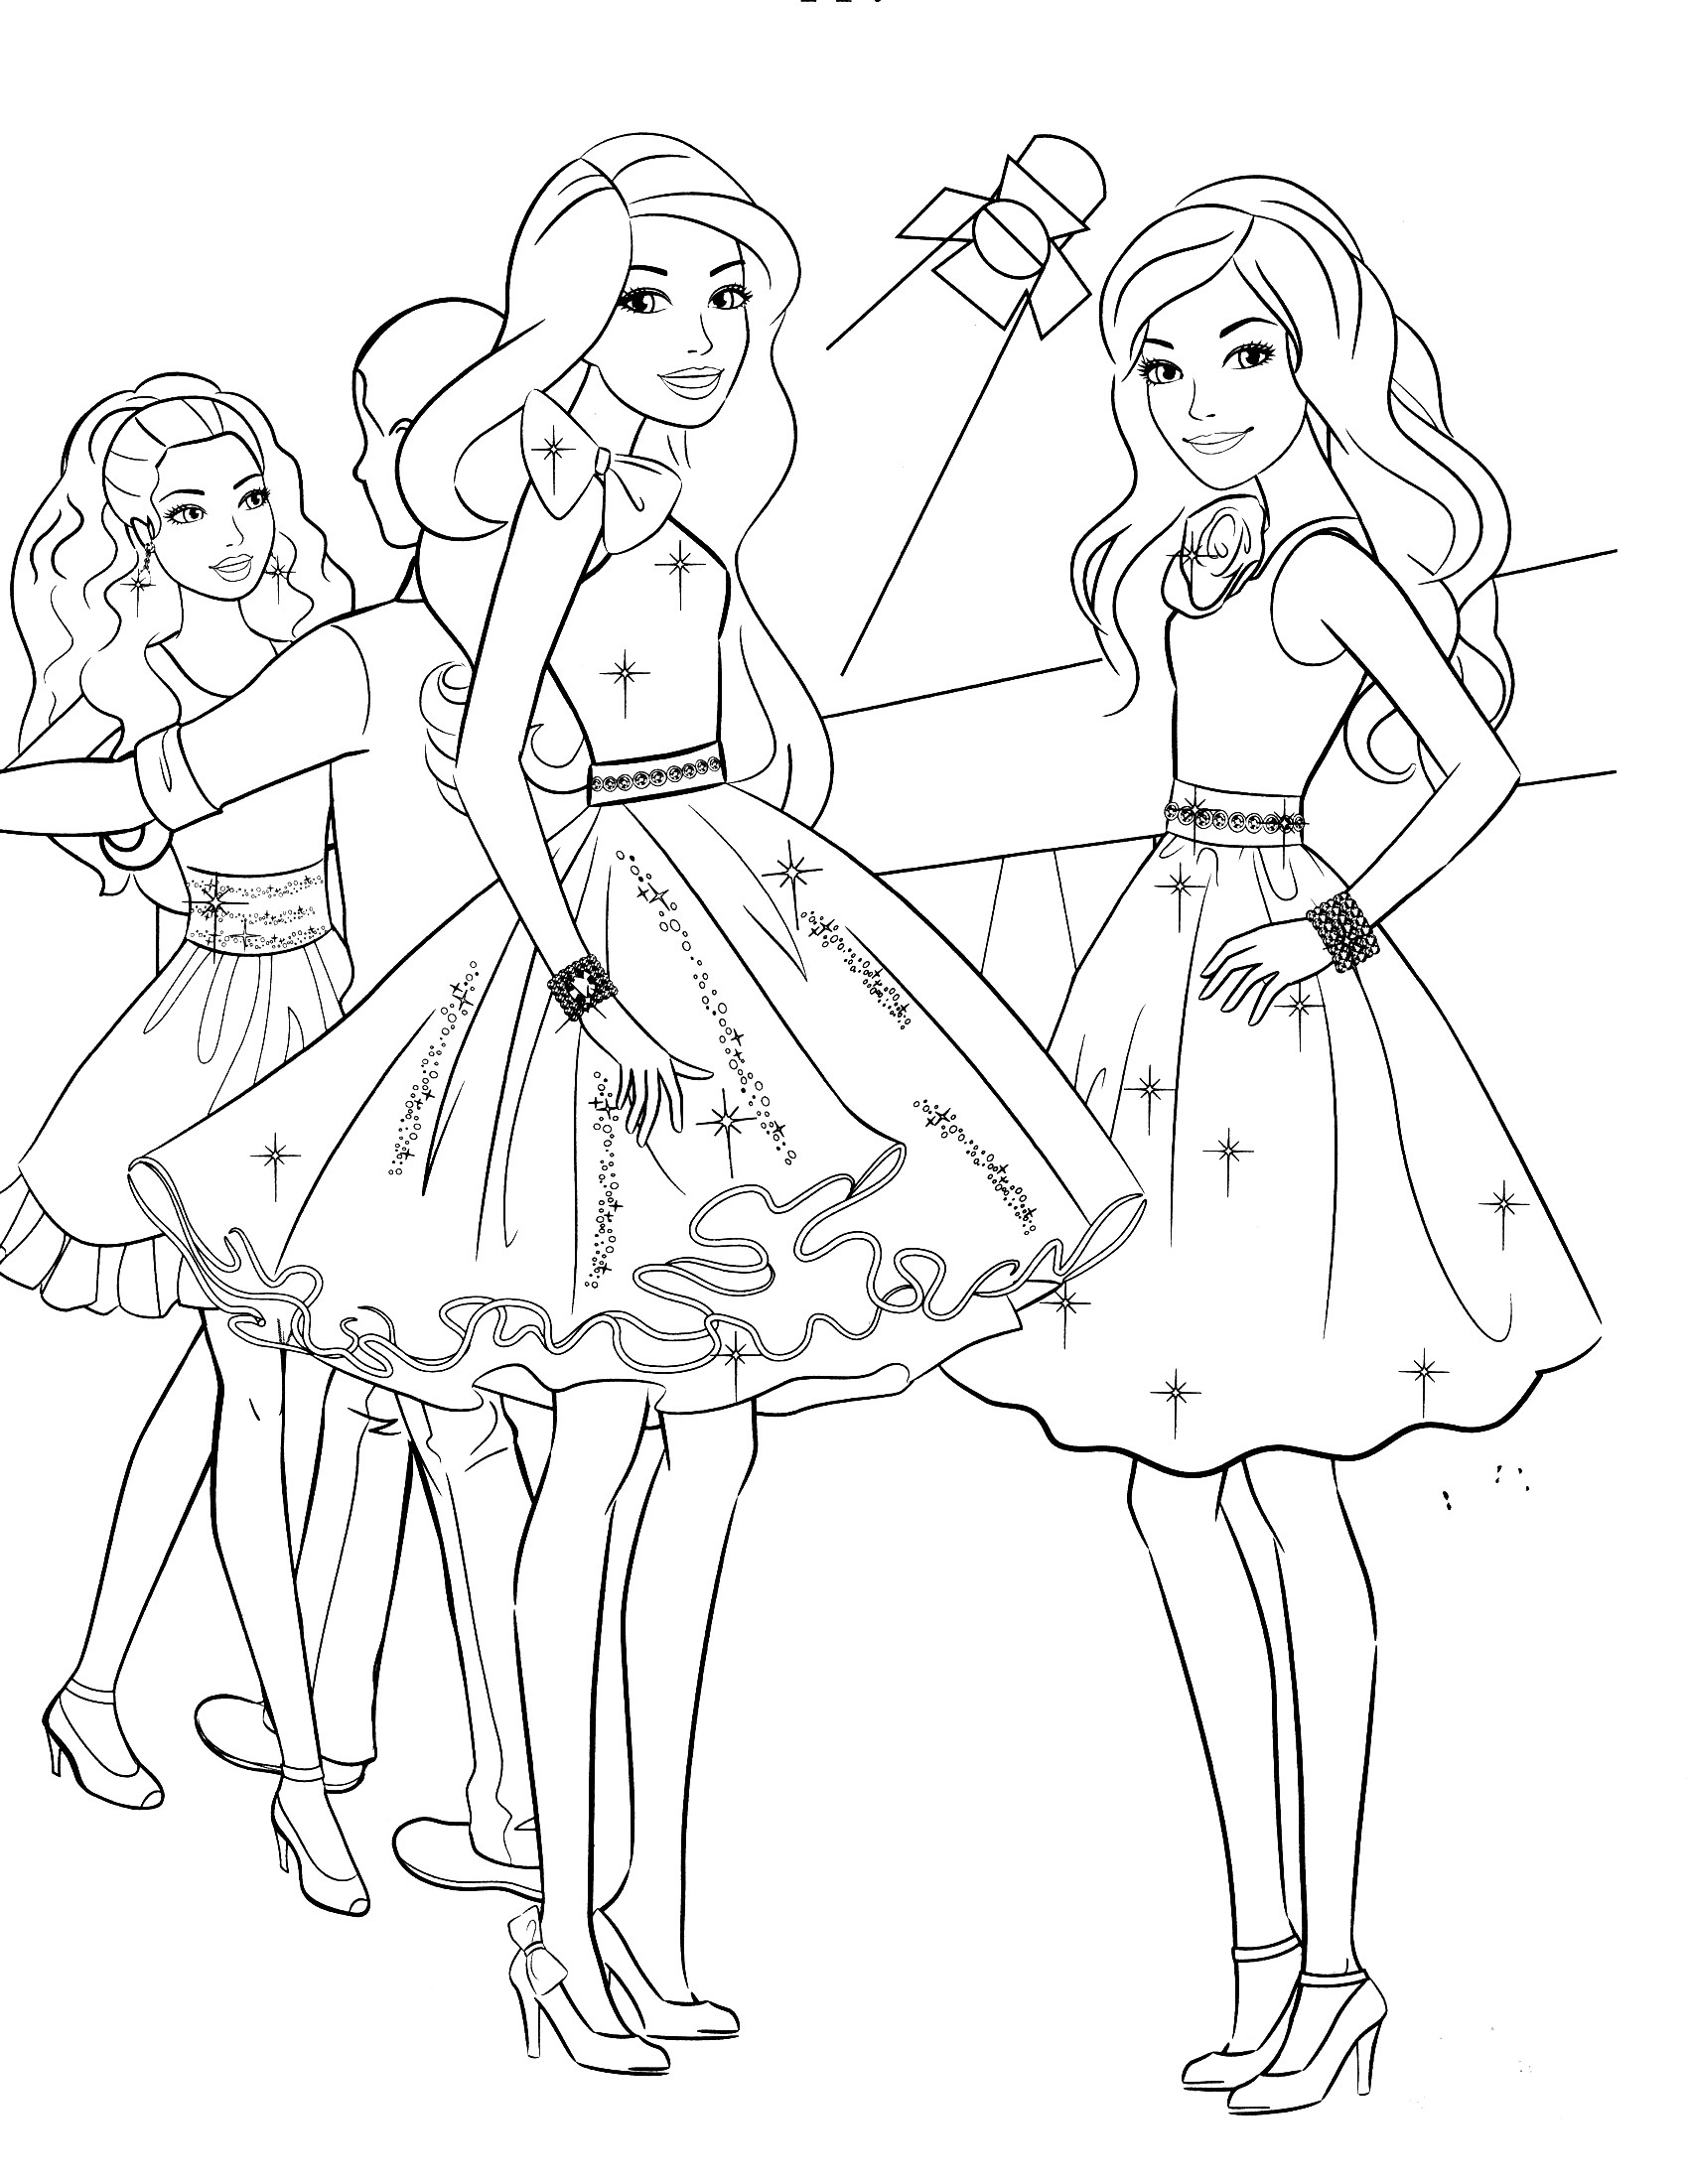 Coloring Pages Barbie  85 Barbie Coloring Pages for Girls Barbie Princess